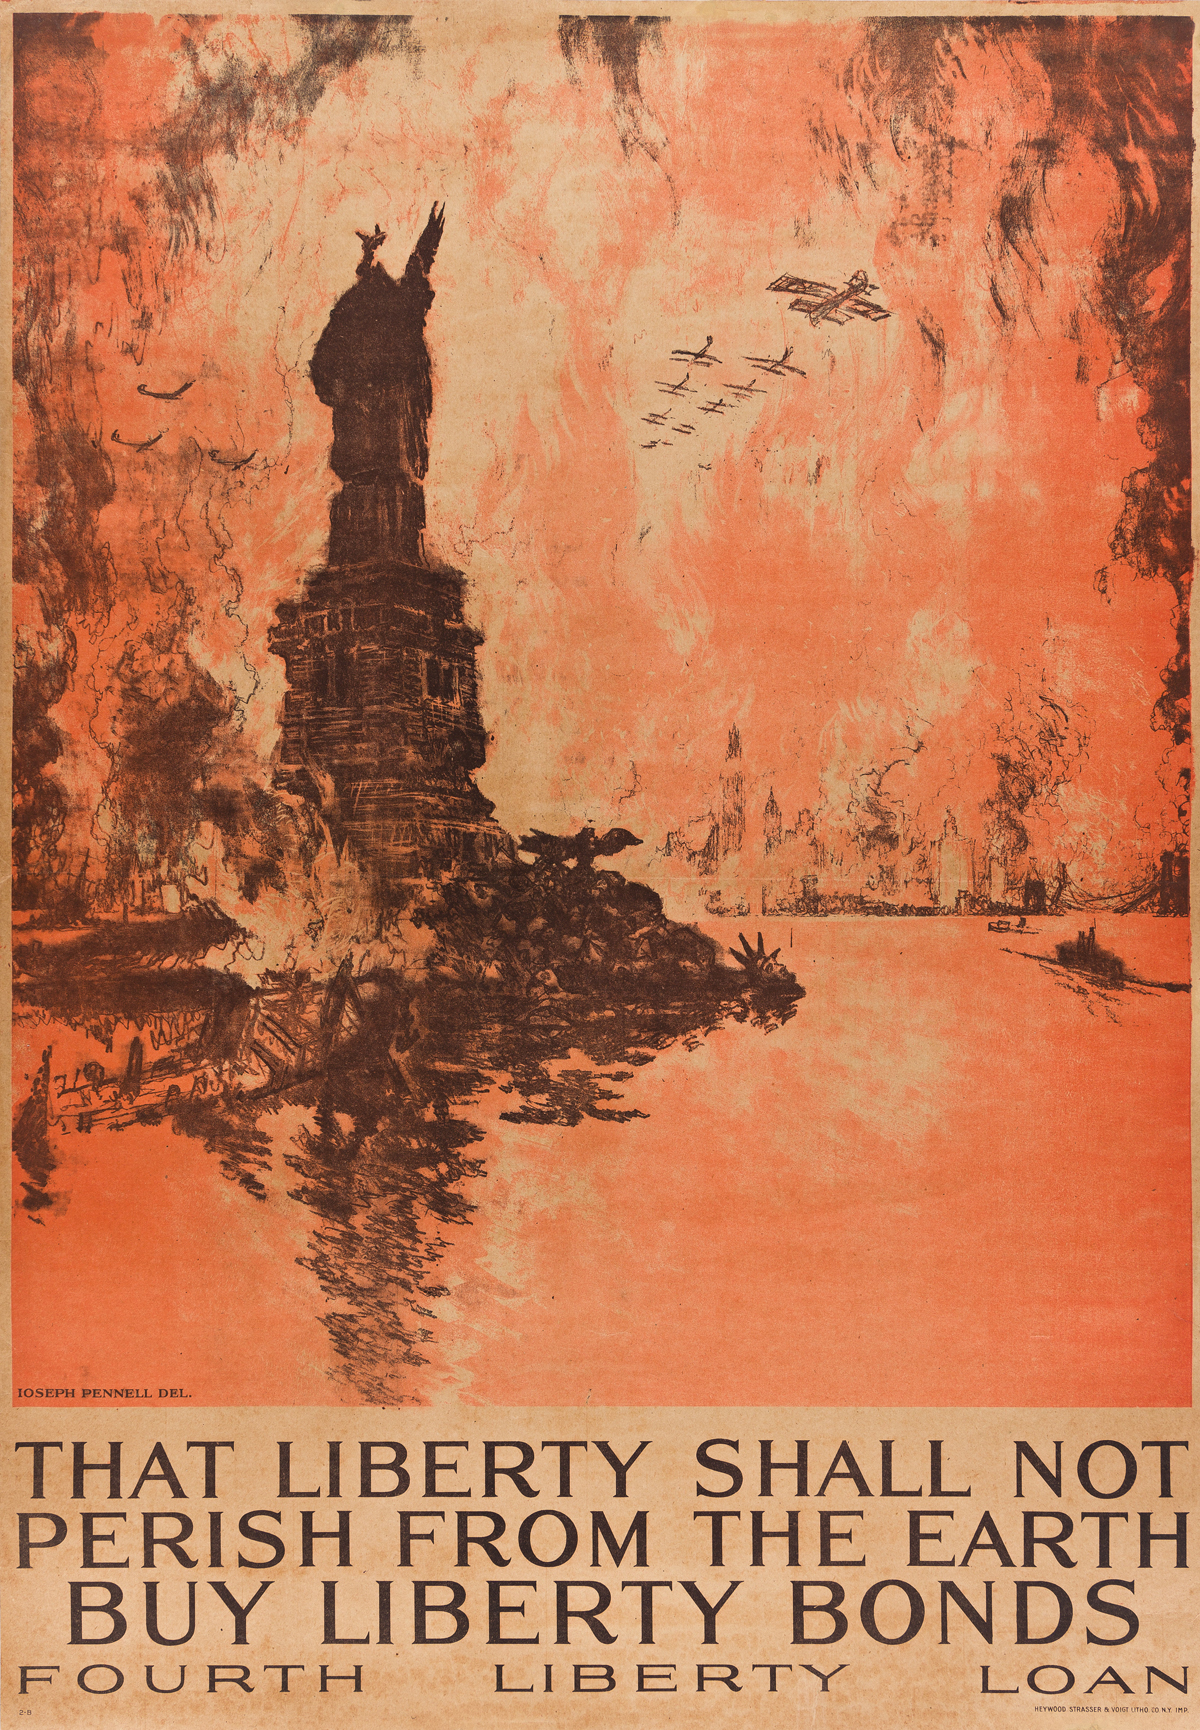 JOSEPH PENNELL (1857-1926).  THAT LIBERTY SHALL NOT PERISH FROM THE EARTH. 1918. 40¾x28¼ inches, 103½x71¾ cm. Heywood, Strasser & Voigt